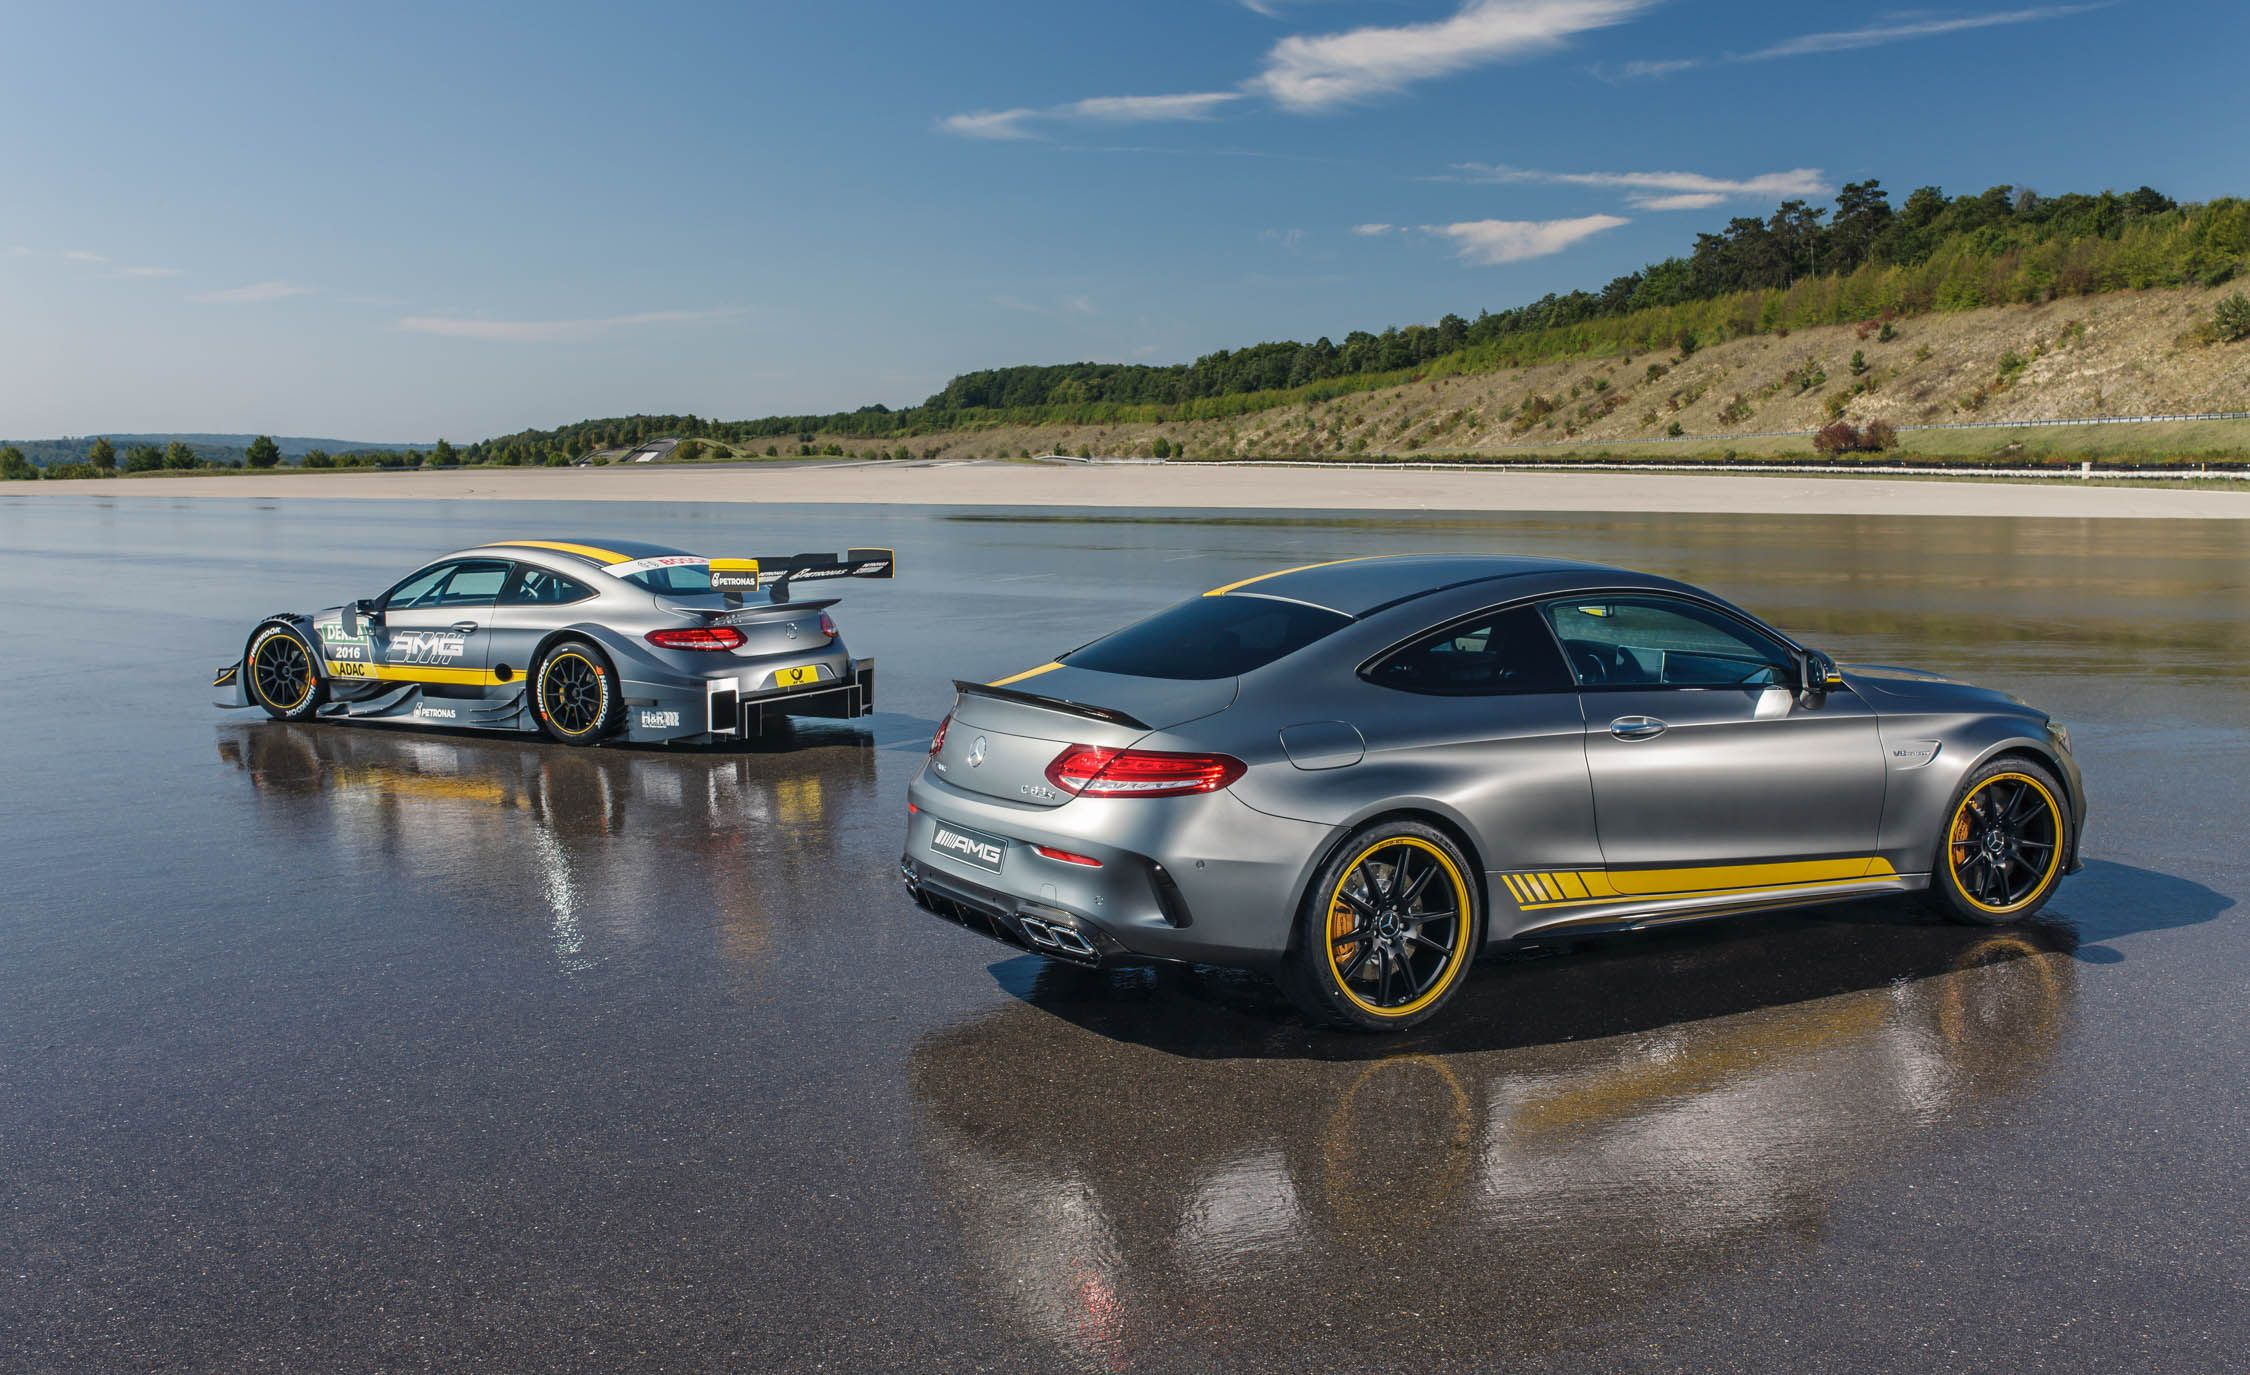 2017 mercedes-amg c63 coupe pictures | photo gallery | car and driver